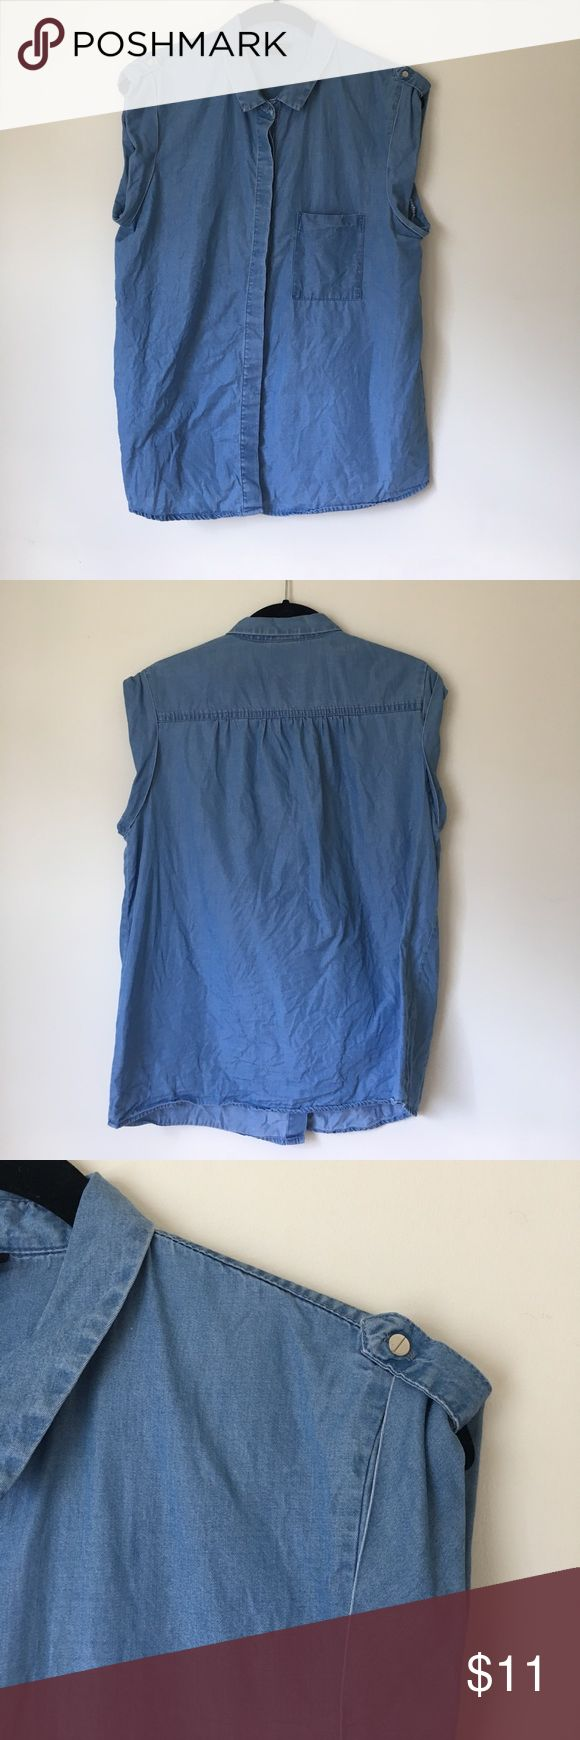 Sleeveless denim shirt Button up denim shirt with pocket and button detailing on shoulder. Great condition! Mossimo Supply Co Tops Button Down Shirts